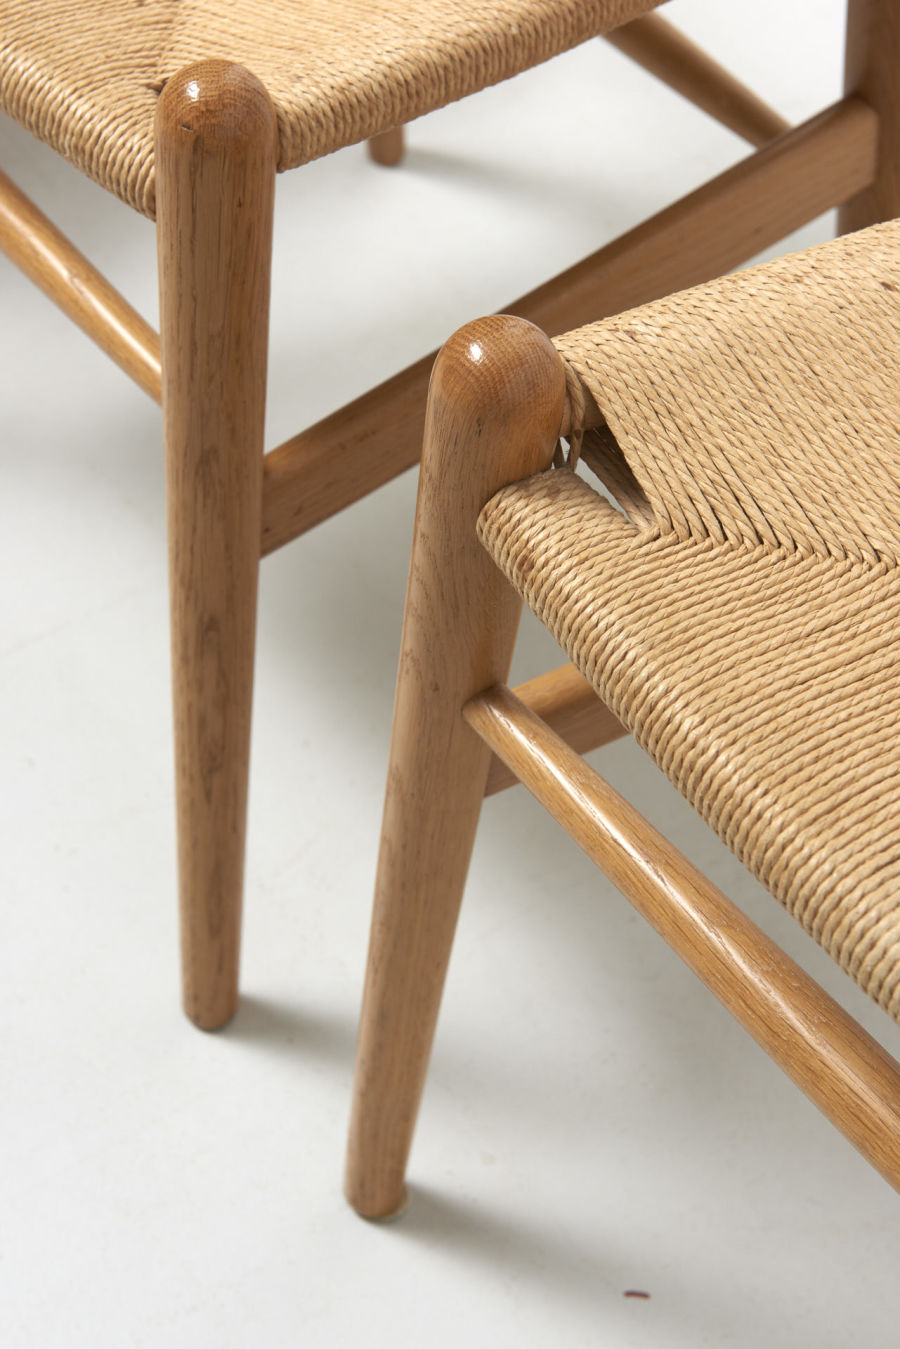 modestfurniture-vintage-1957-wishbone-chairs-hans-wegner11